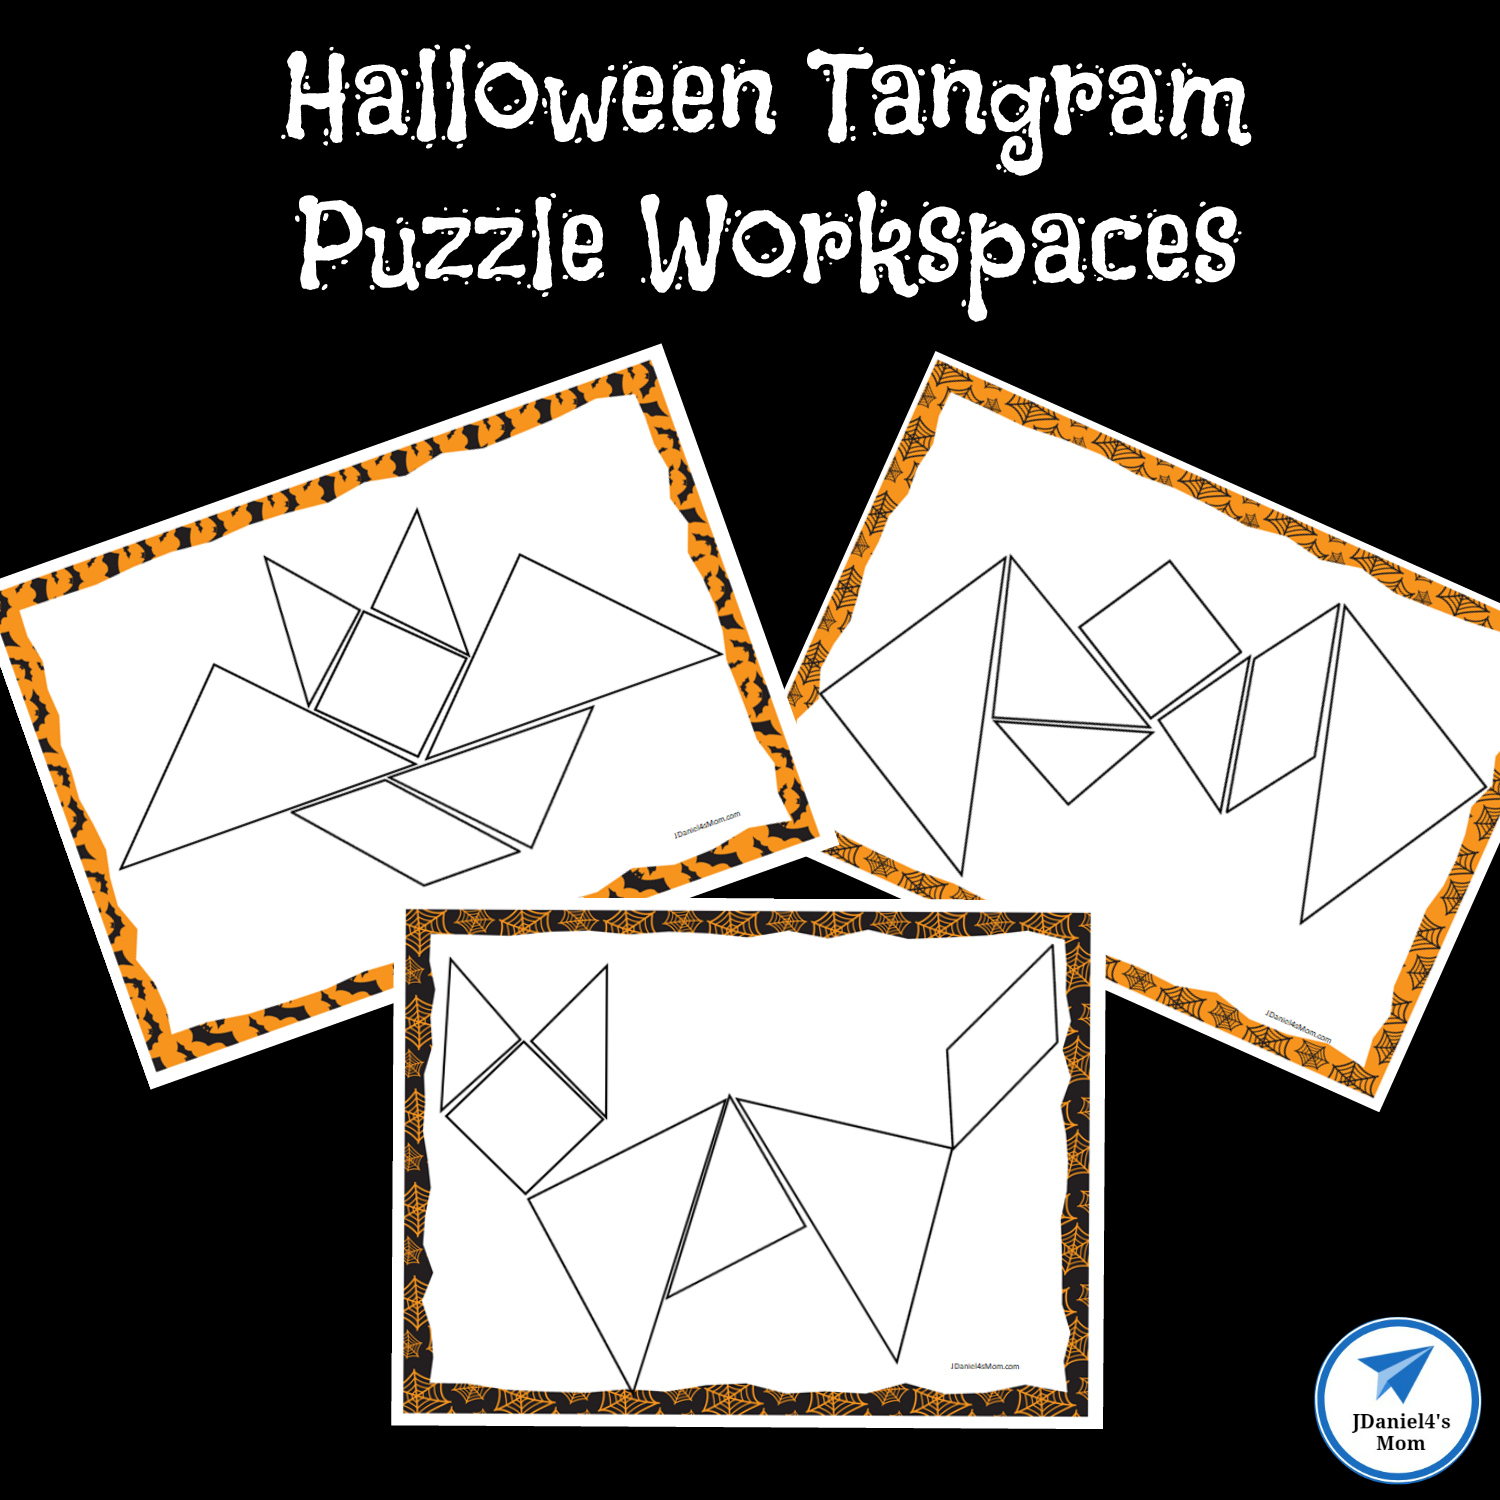 photograph relating to Printable Tangram named Halloween Themed Printable Tangram Puzzles - JDaniel4s Mother